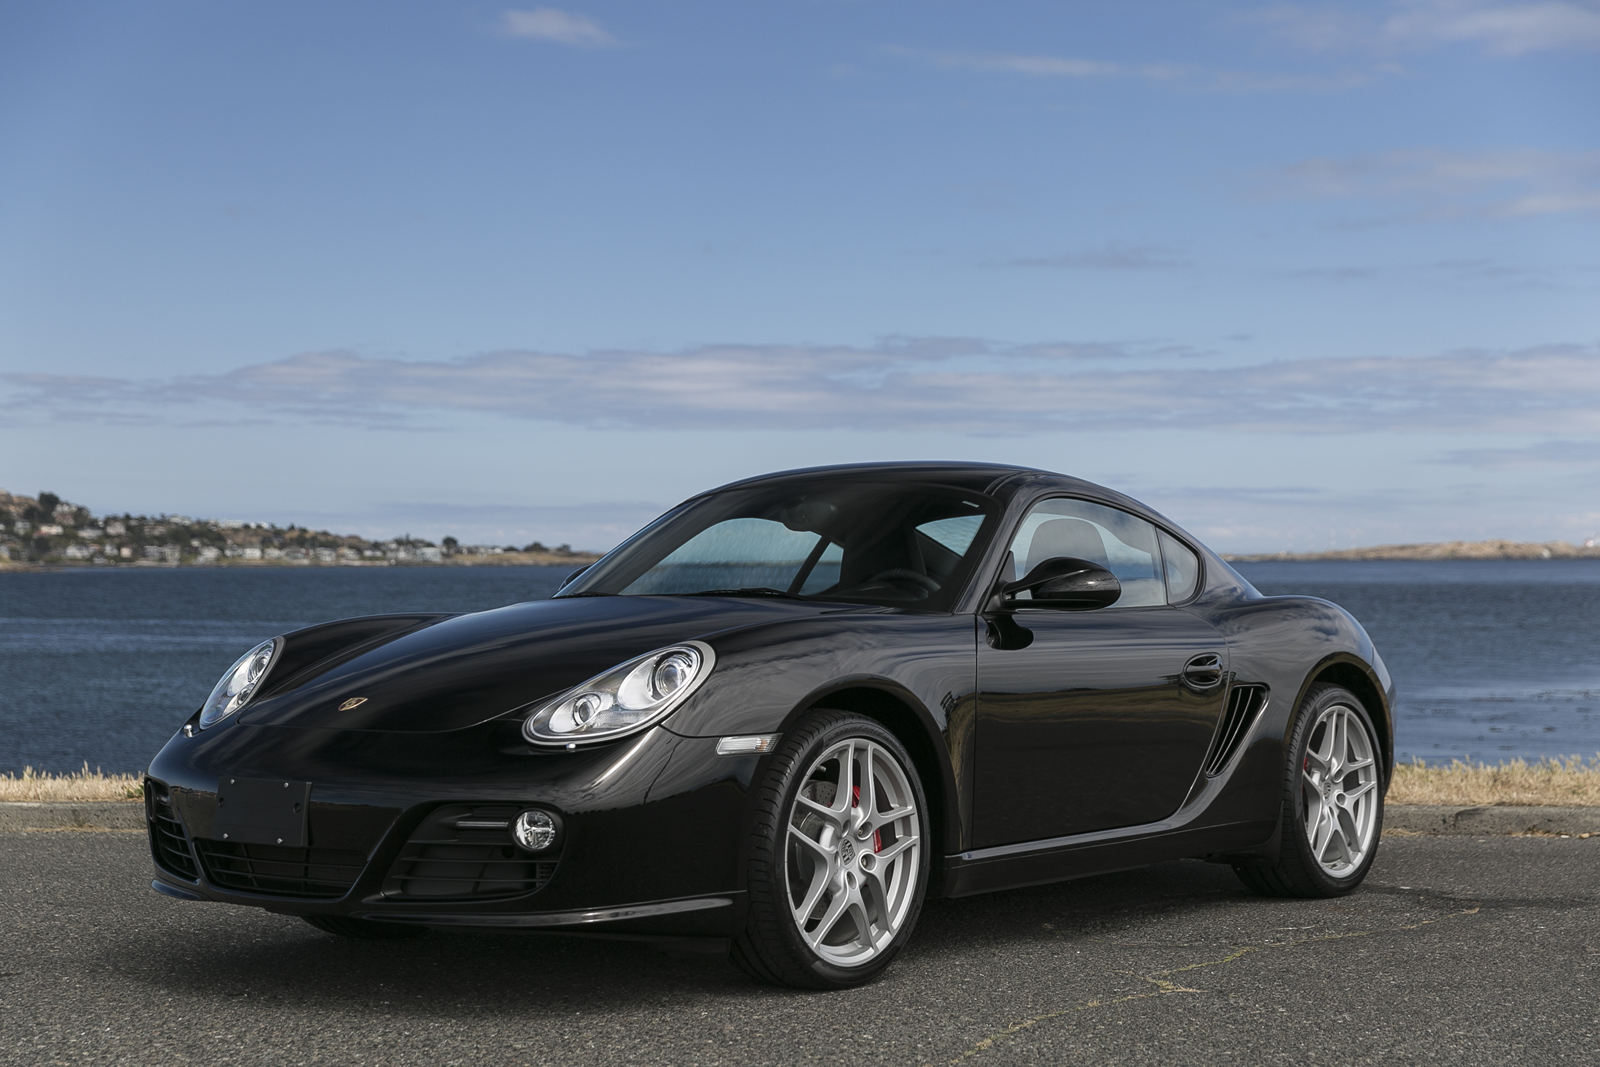 Porsche Cayman S PDK Black on Black in Victoria, BC, Silver Arrow Cars